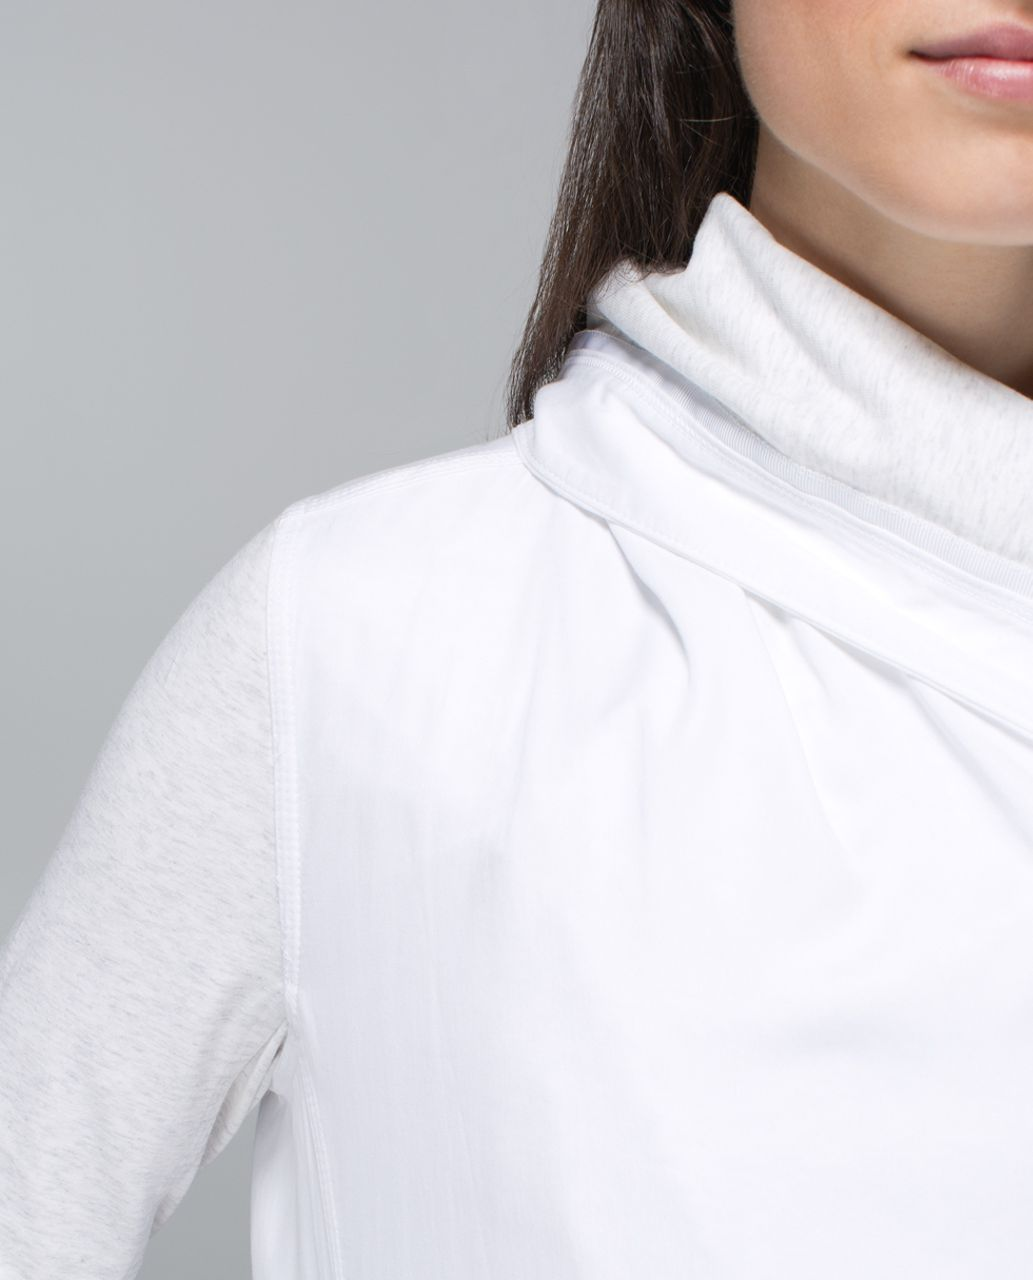 Lululemon Blissed Out Wrap - White / Heathered White